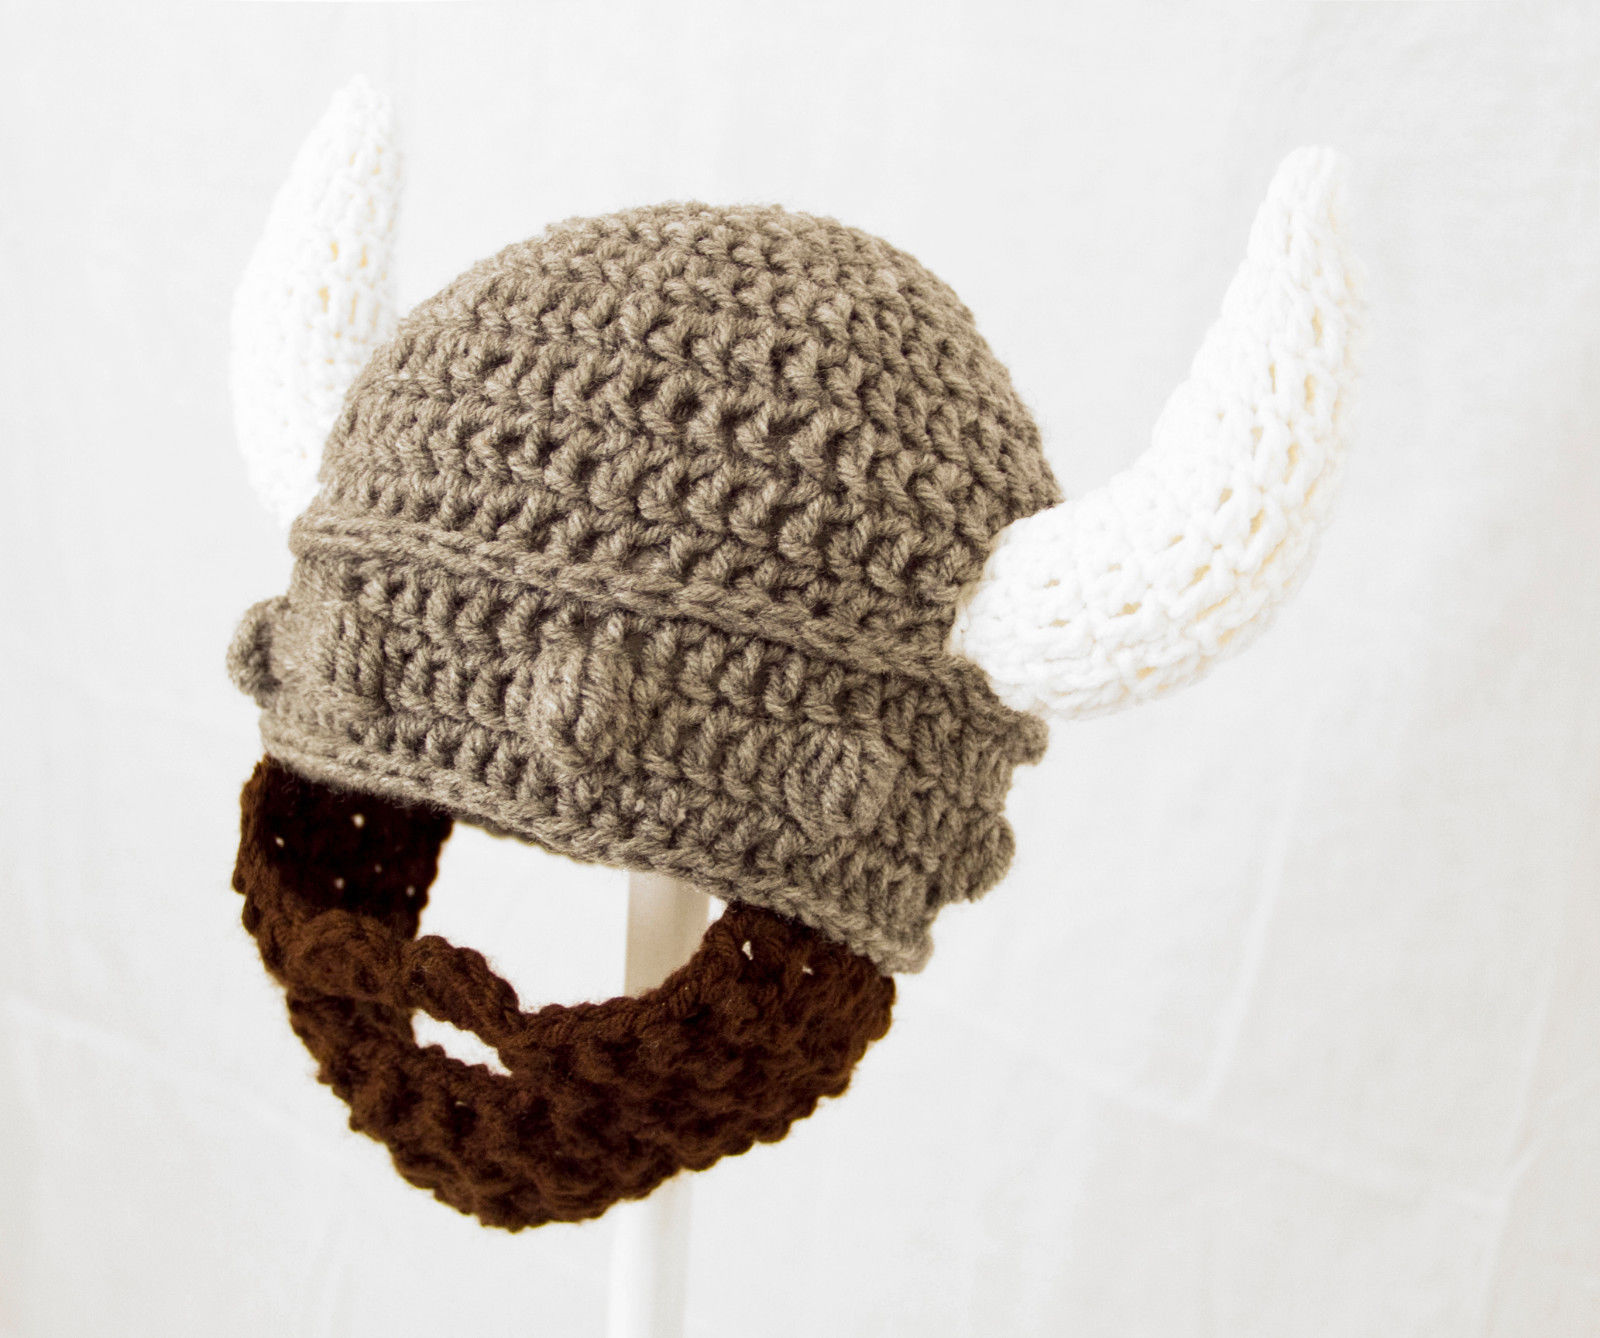 Knitting Patterns For Viking Hat : Viking Beard Hat, Gray Helmet Knit / Crochet Beard Beanie baby-adult - Hats